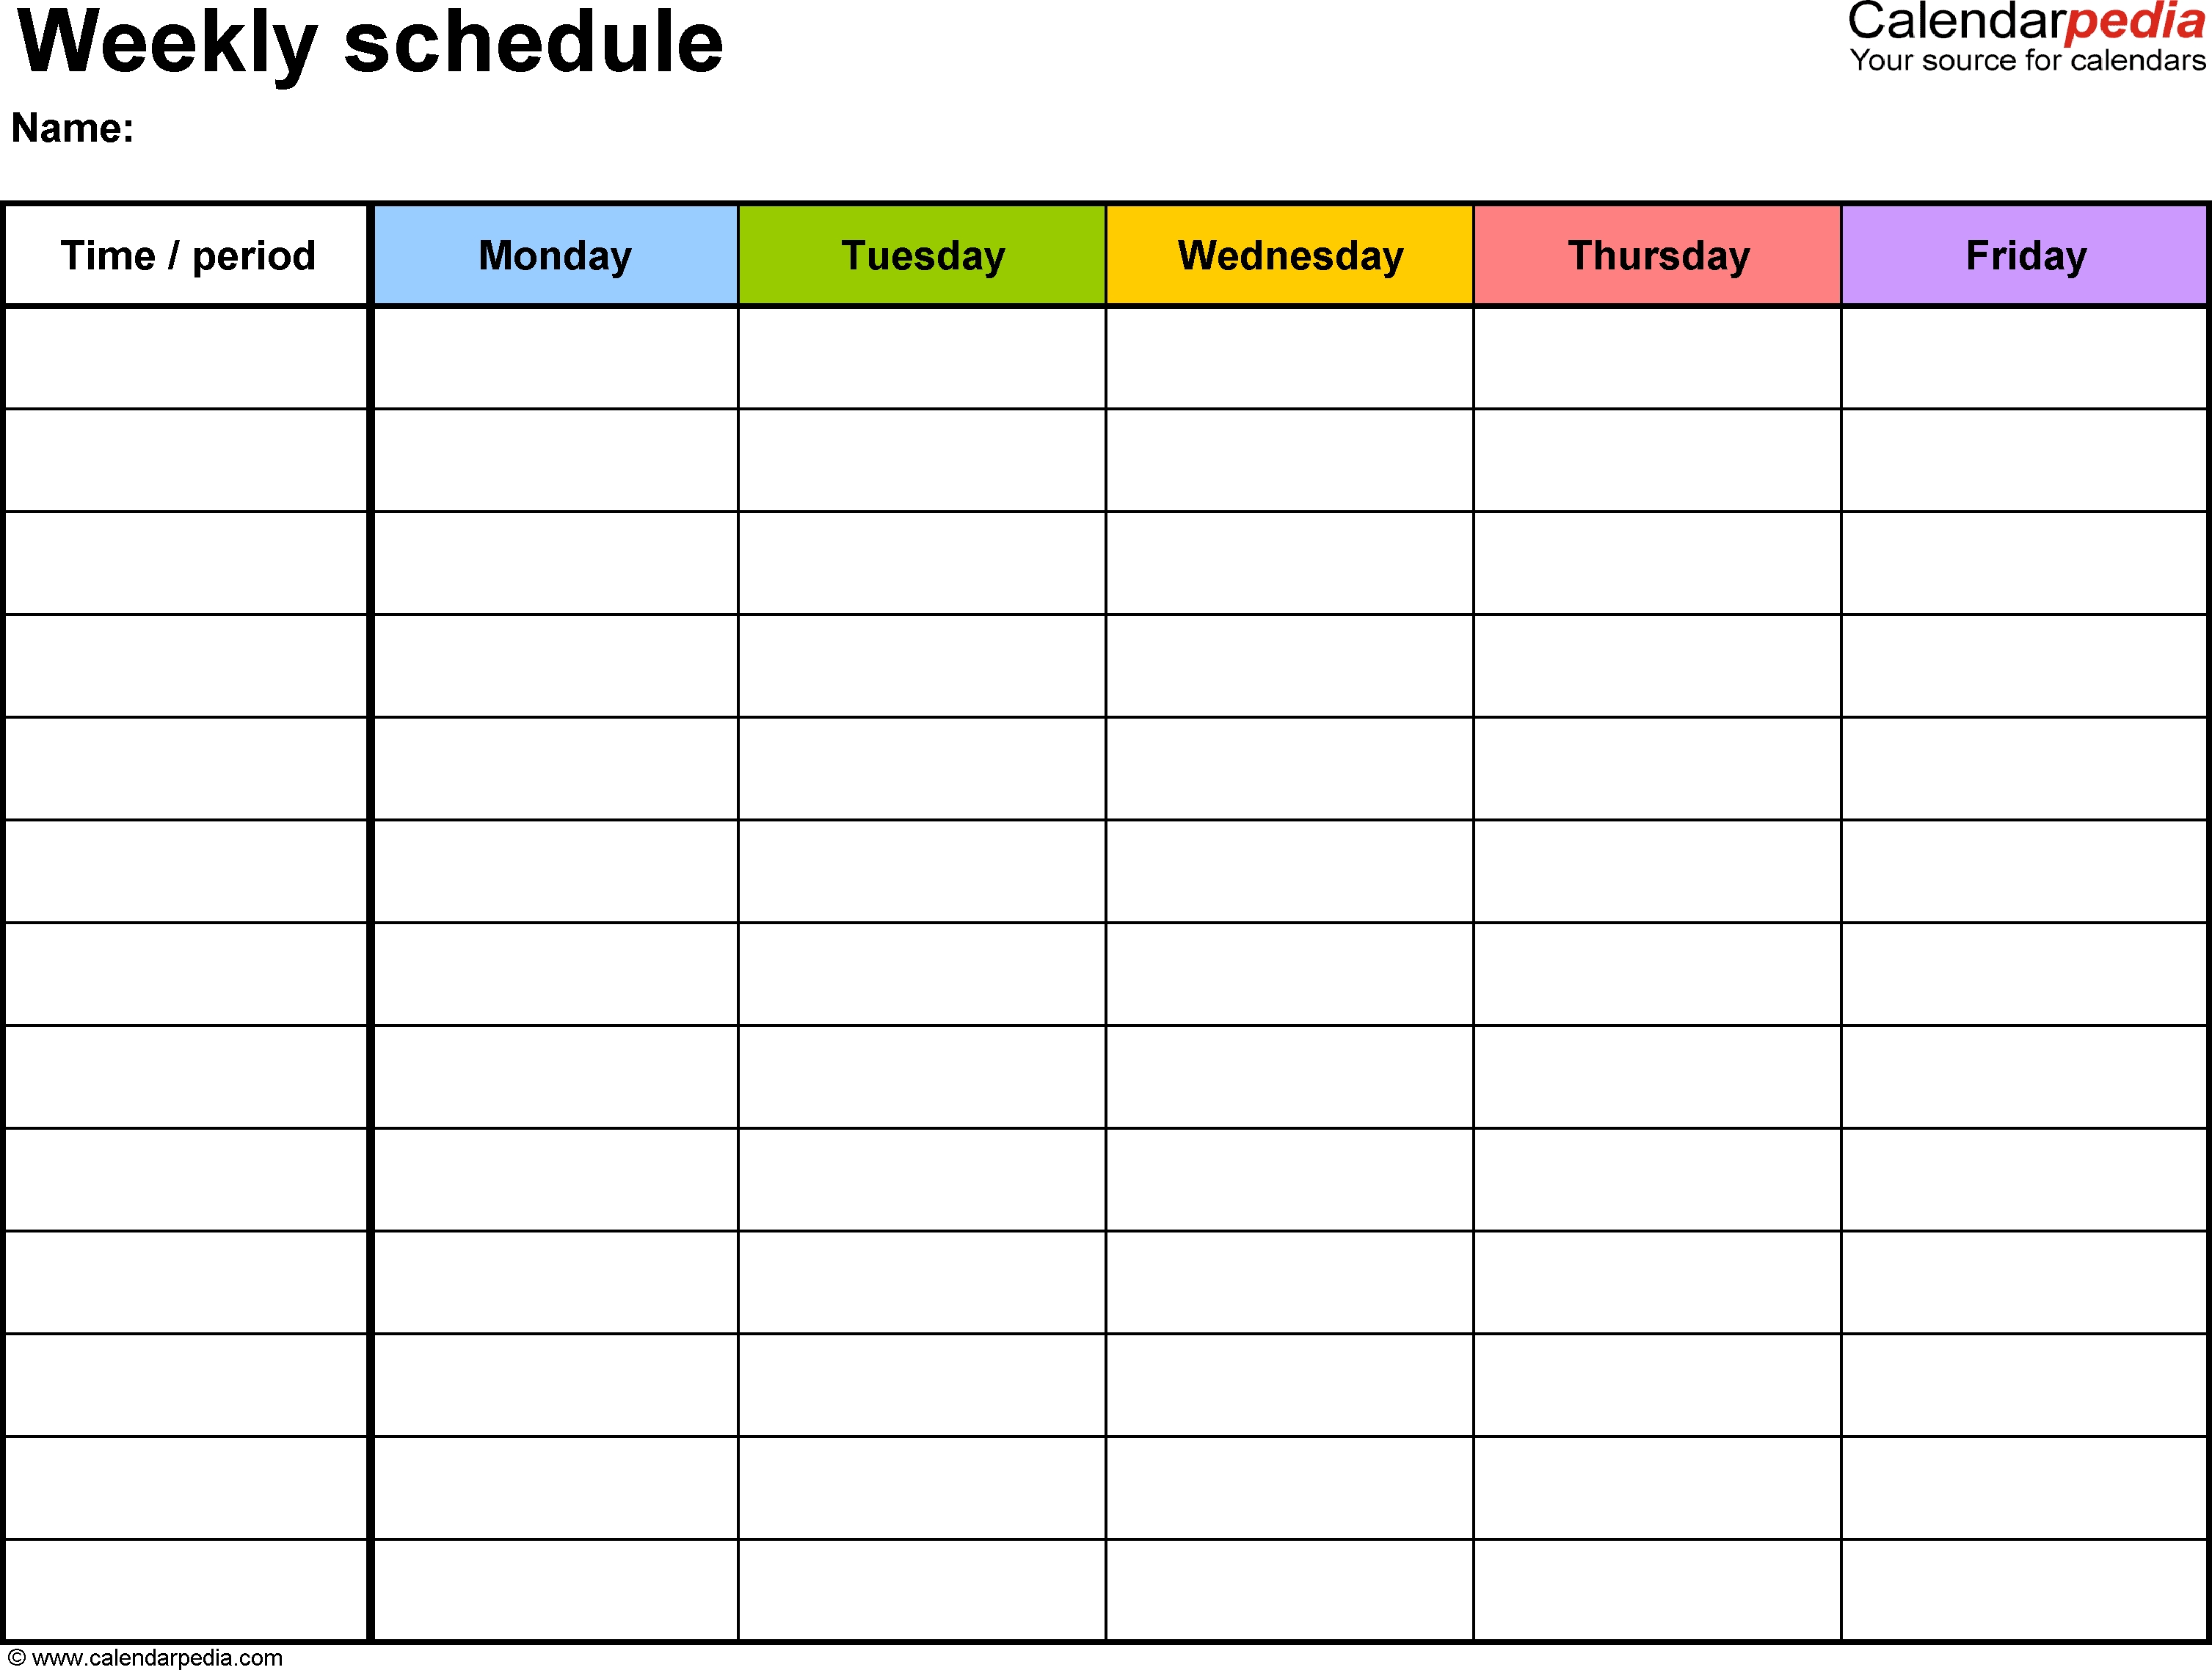 Free Weekly Schedule Templates For Word - 18 Templates throughout Blank Weekly Calendays With Time